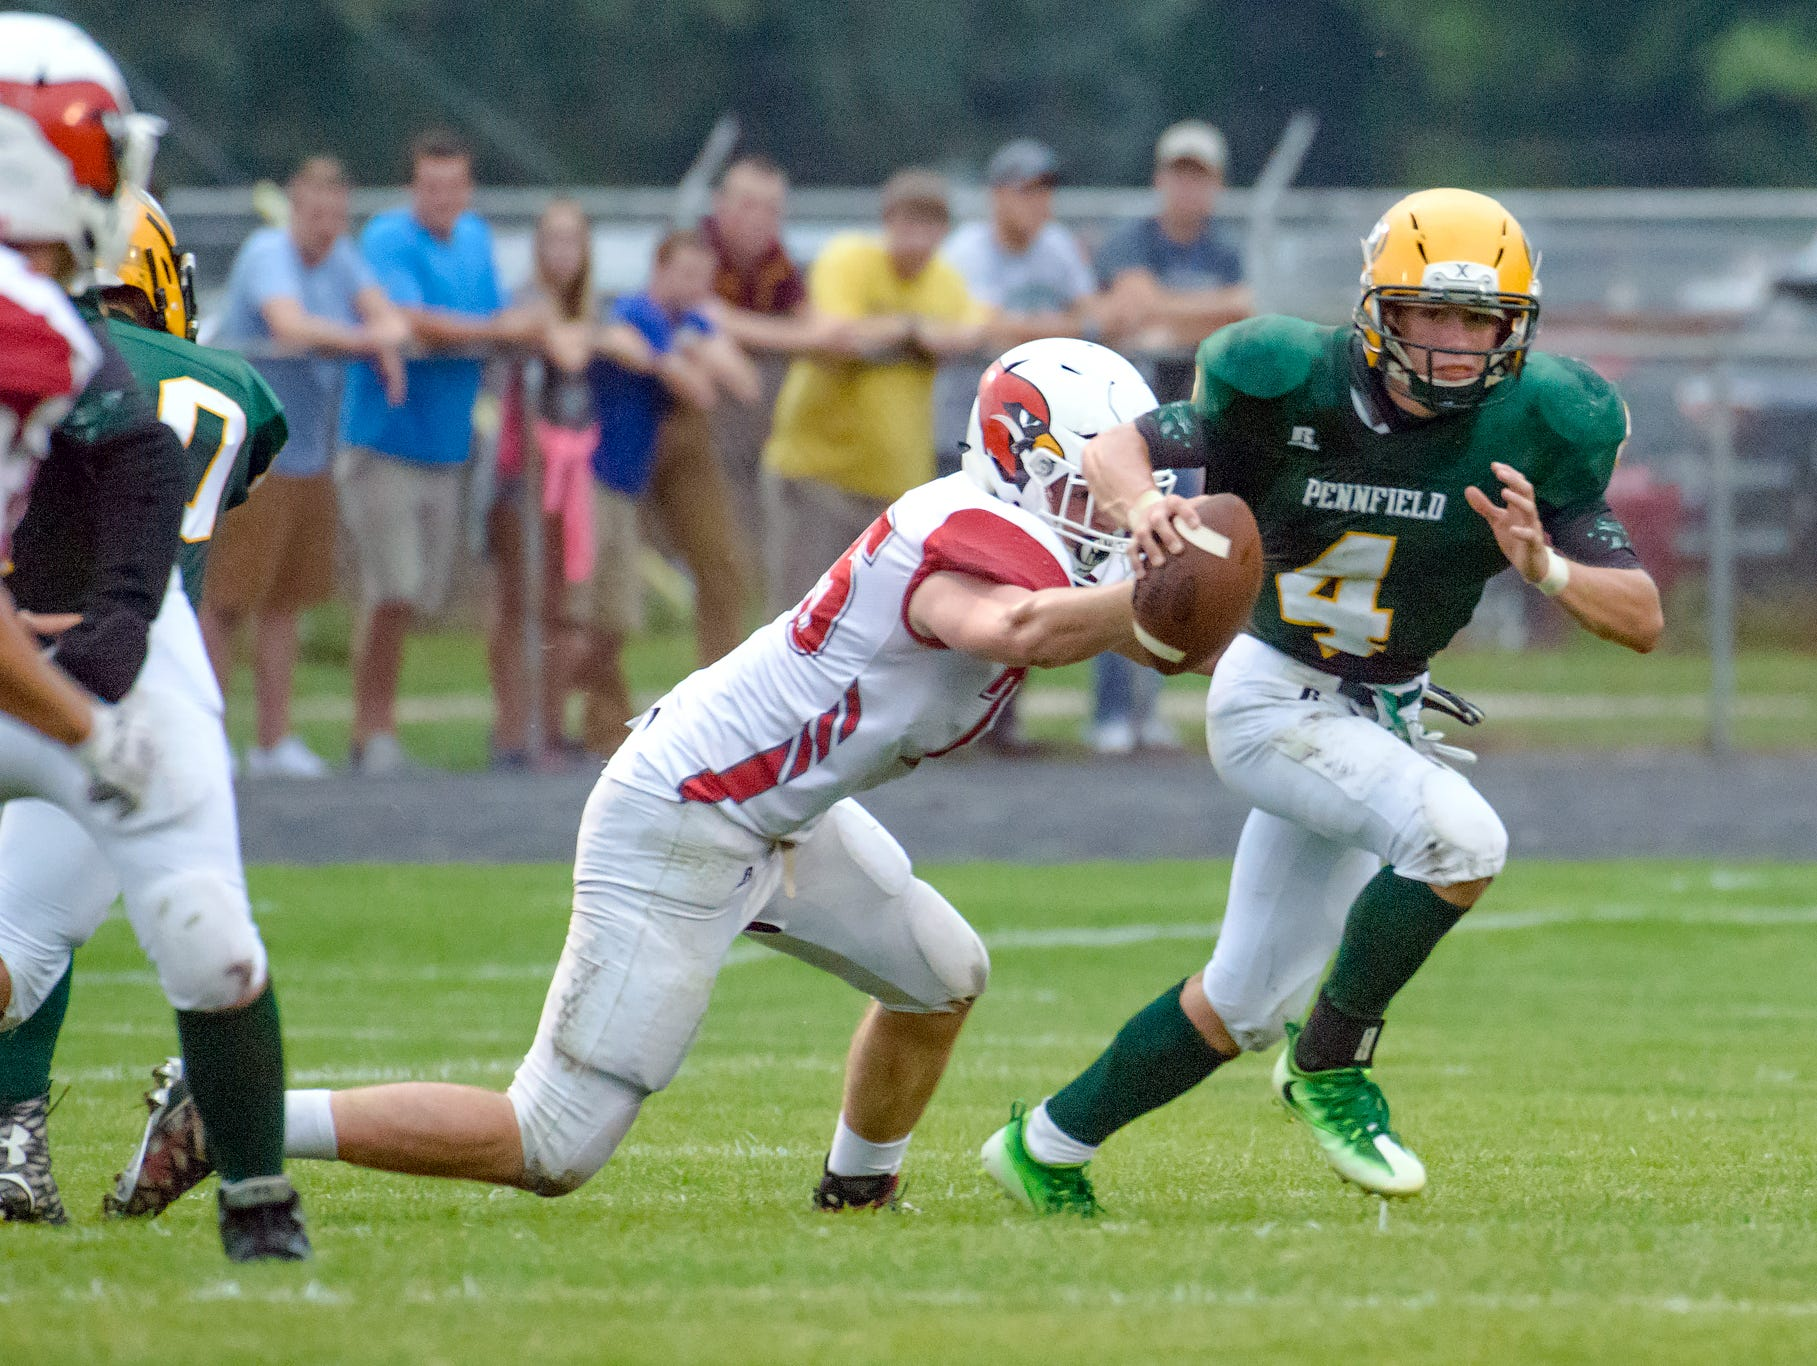 Pennfield quarterback Kollin Kemerling scrambles away from a Cardinal defender during first quarter of play Friday night.